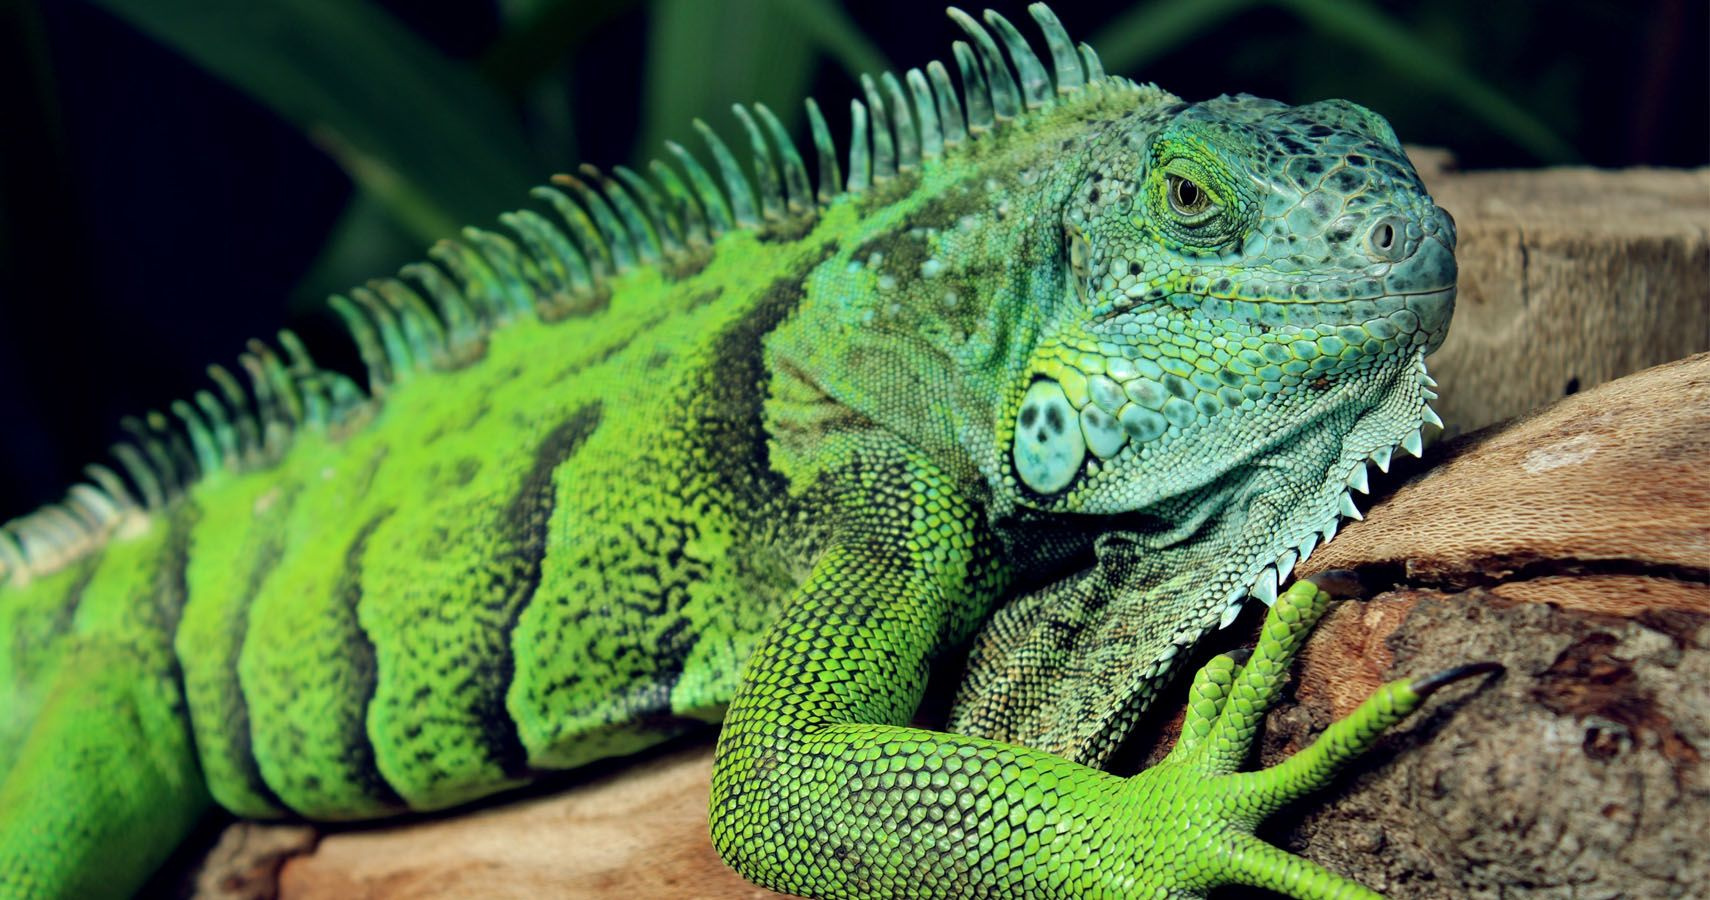 10 Iguana Facts And 5 Busted Myths For Iguana Awareness Day